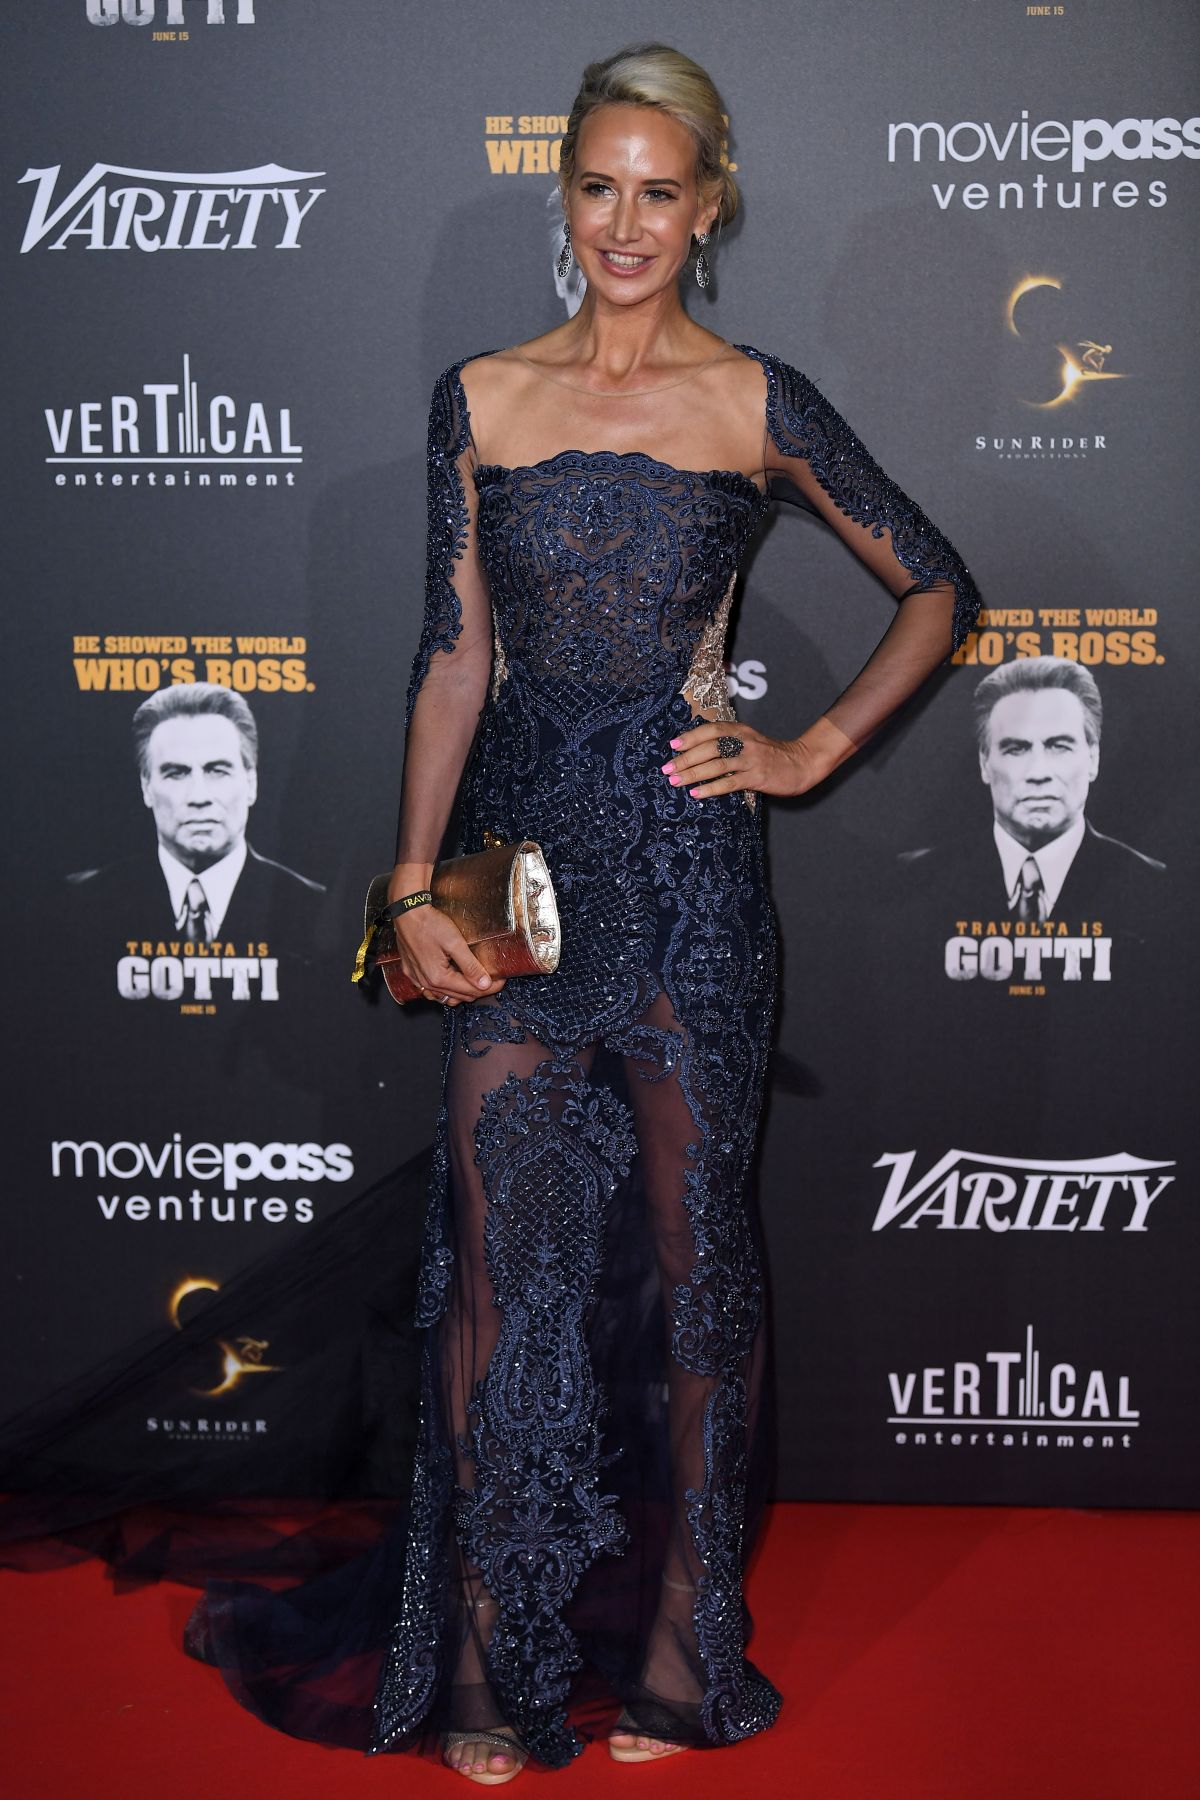 Victoria Hervey At 'Gotti' premiere, After Party, 71st Cannes Film Festival